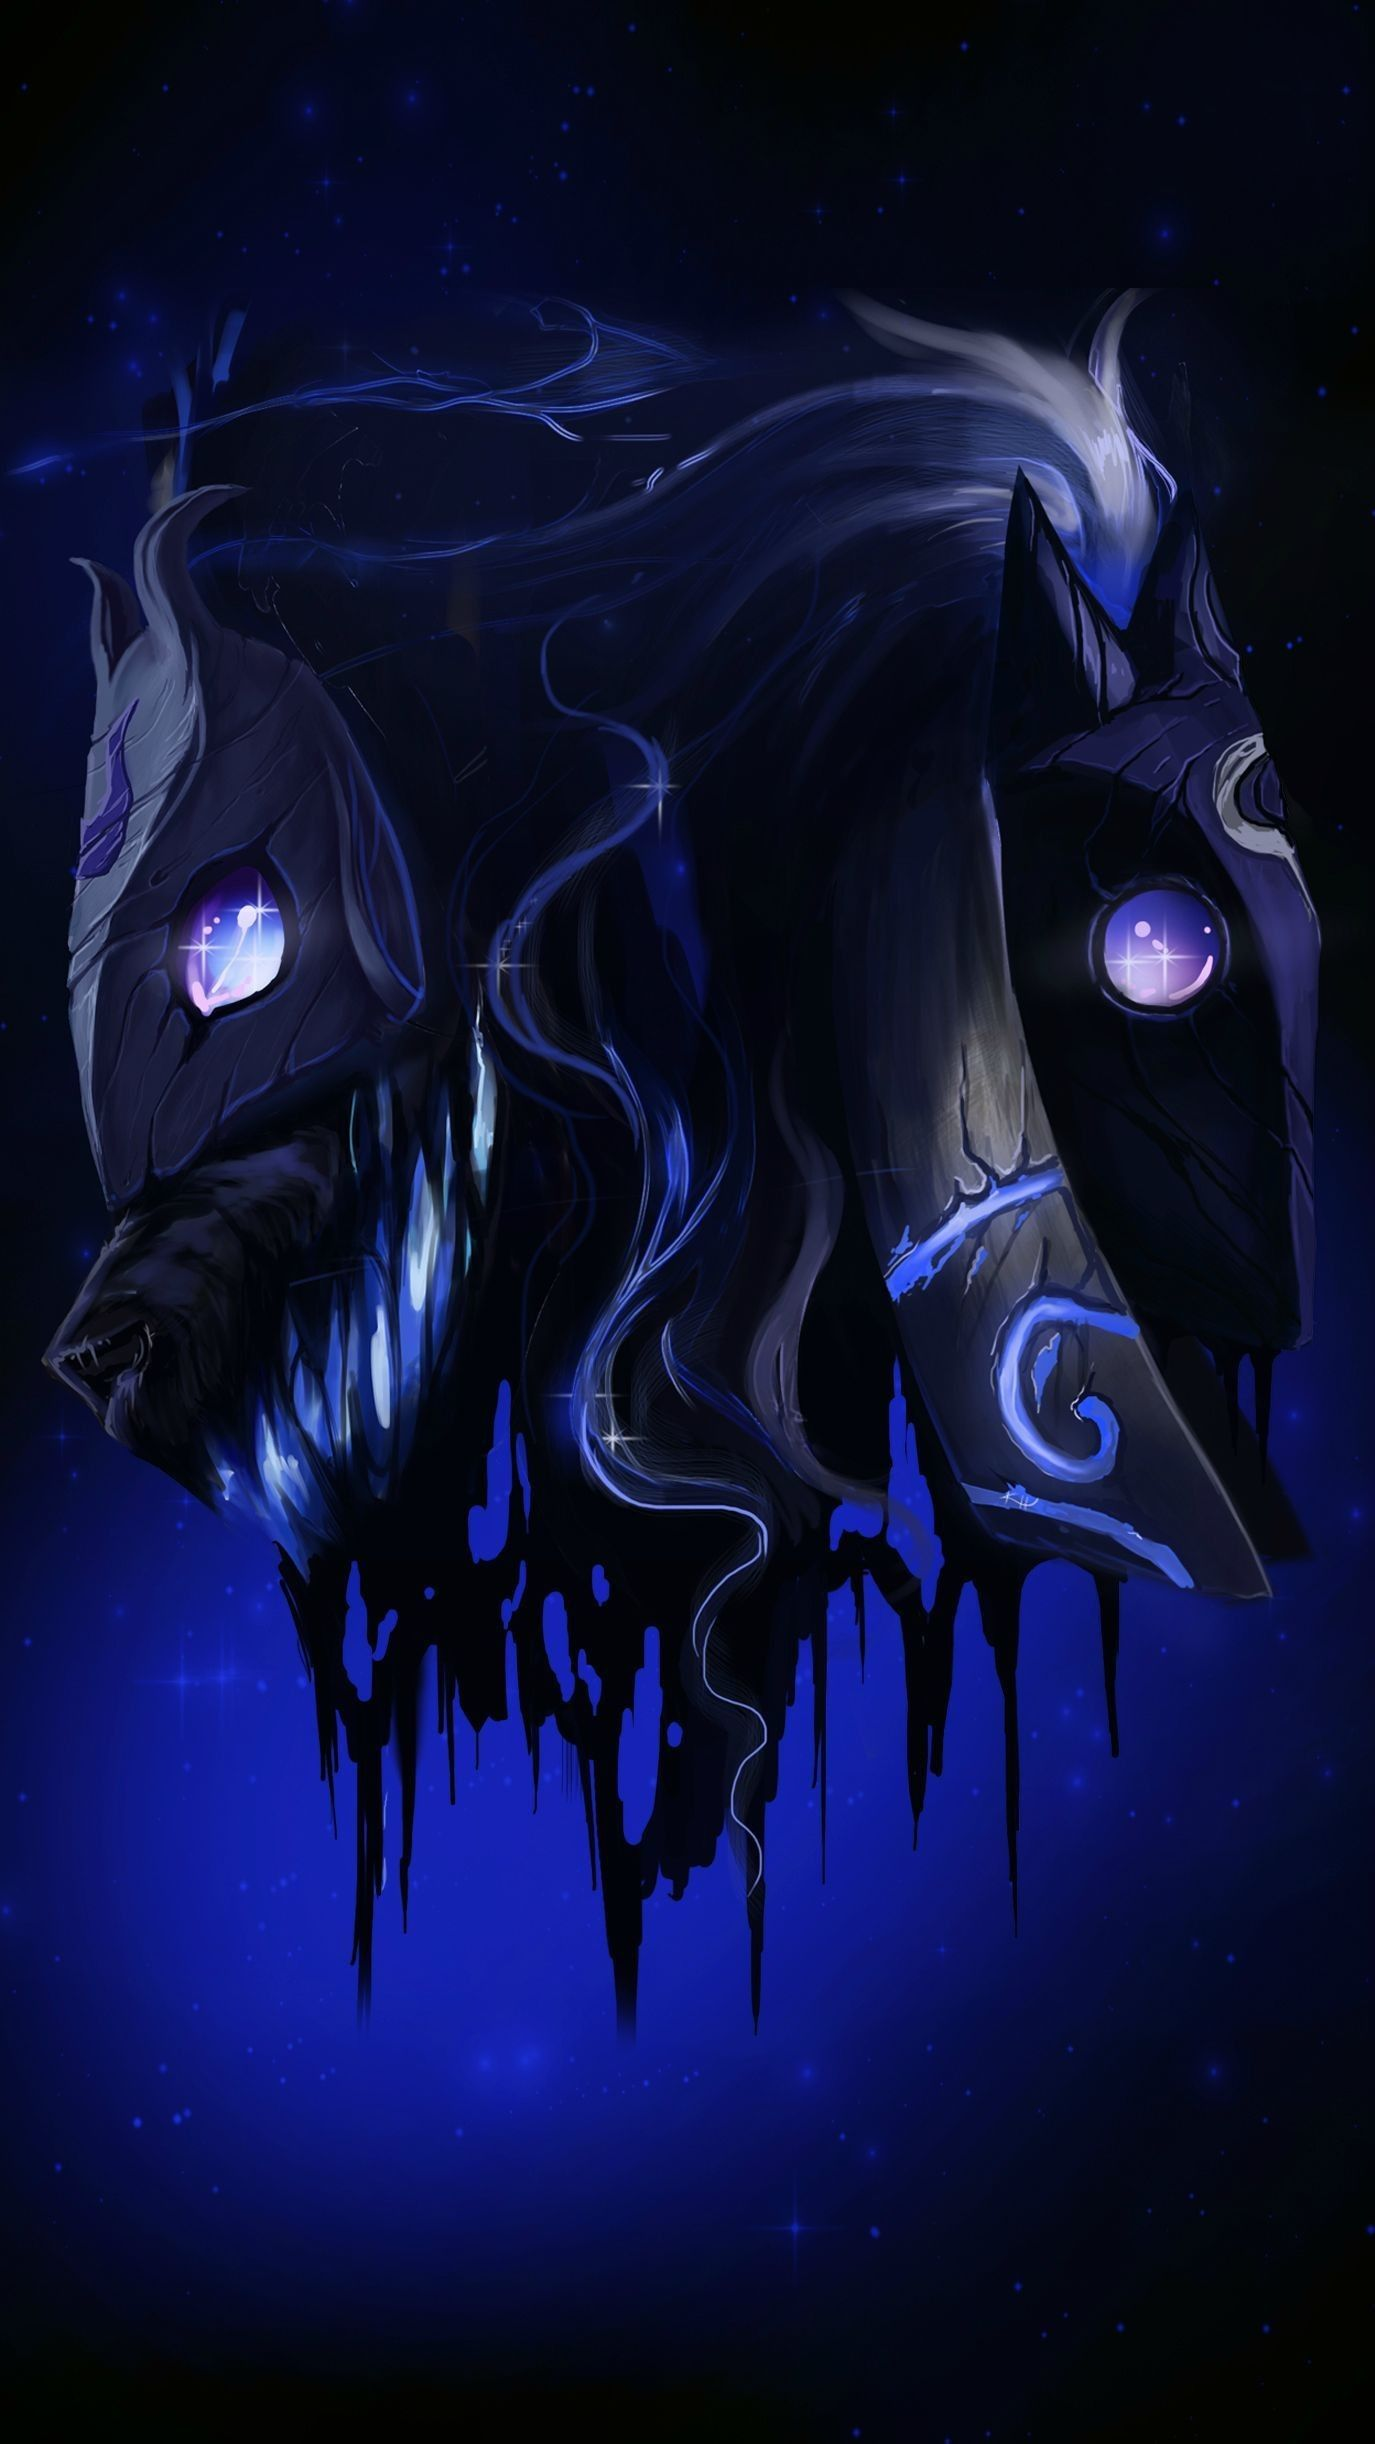 82 Kindred Lol Wallpapers On Wallpaperplay Lol League Of